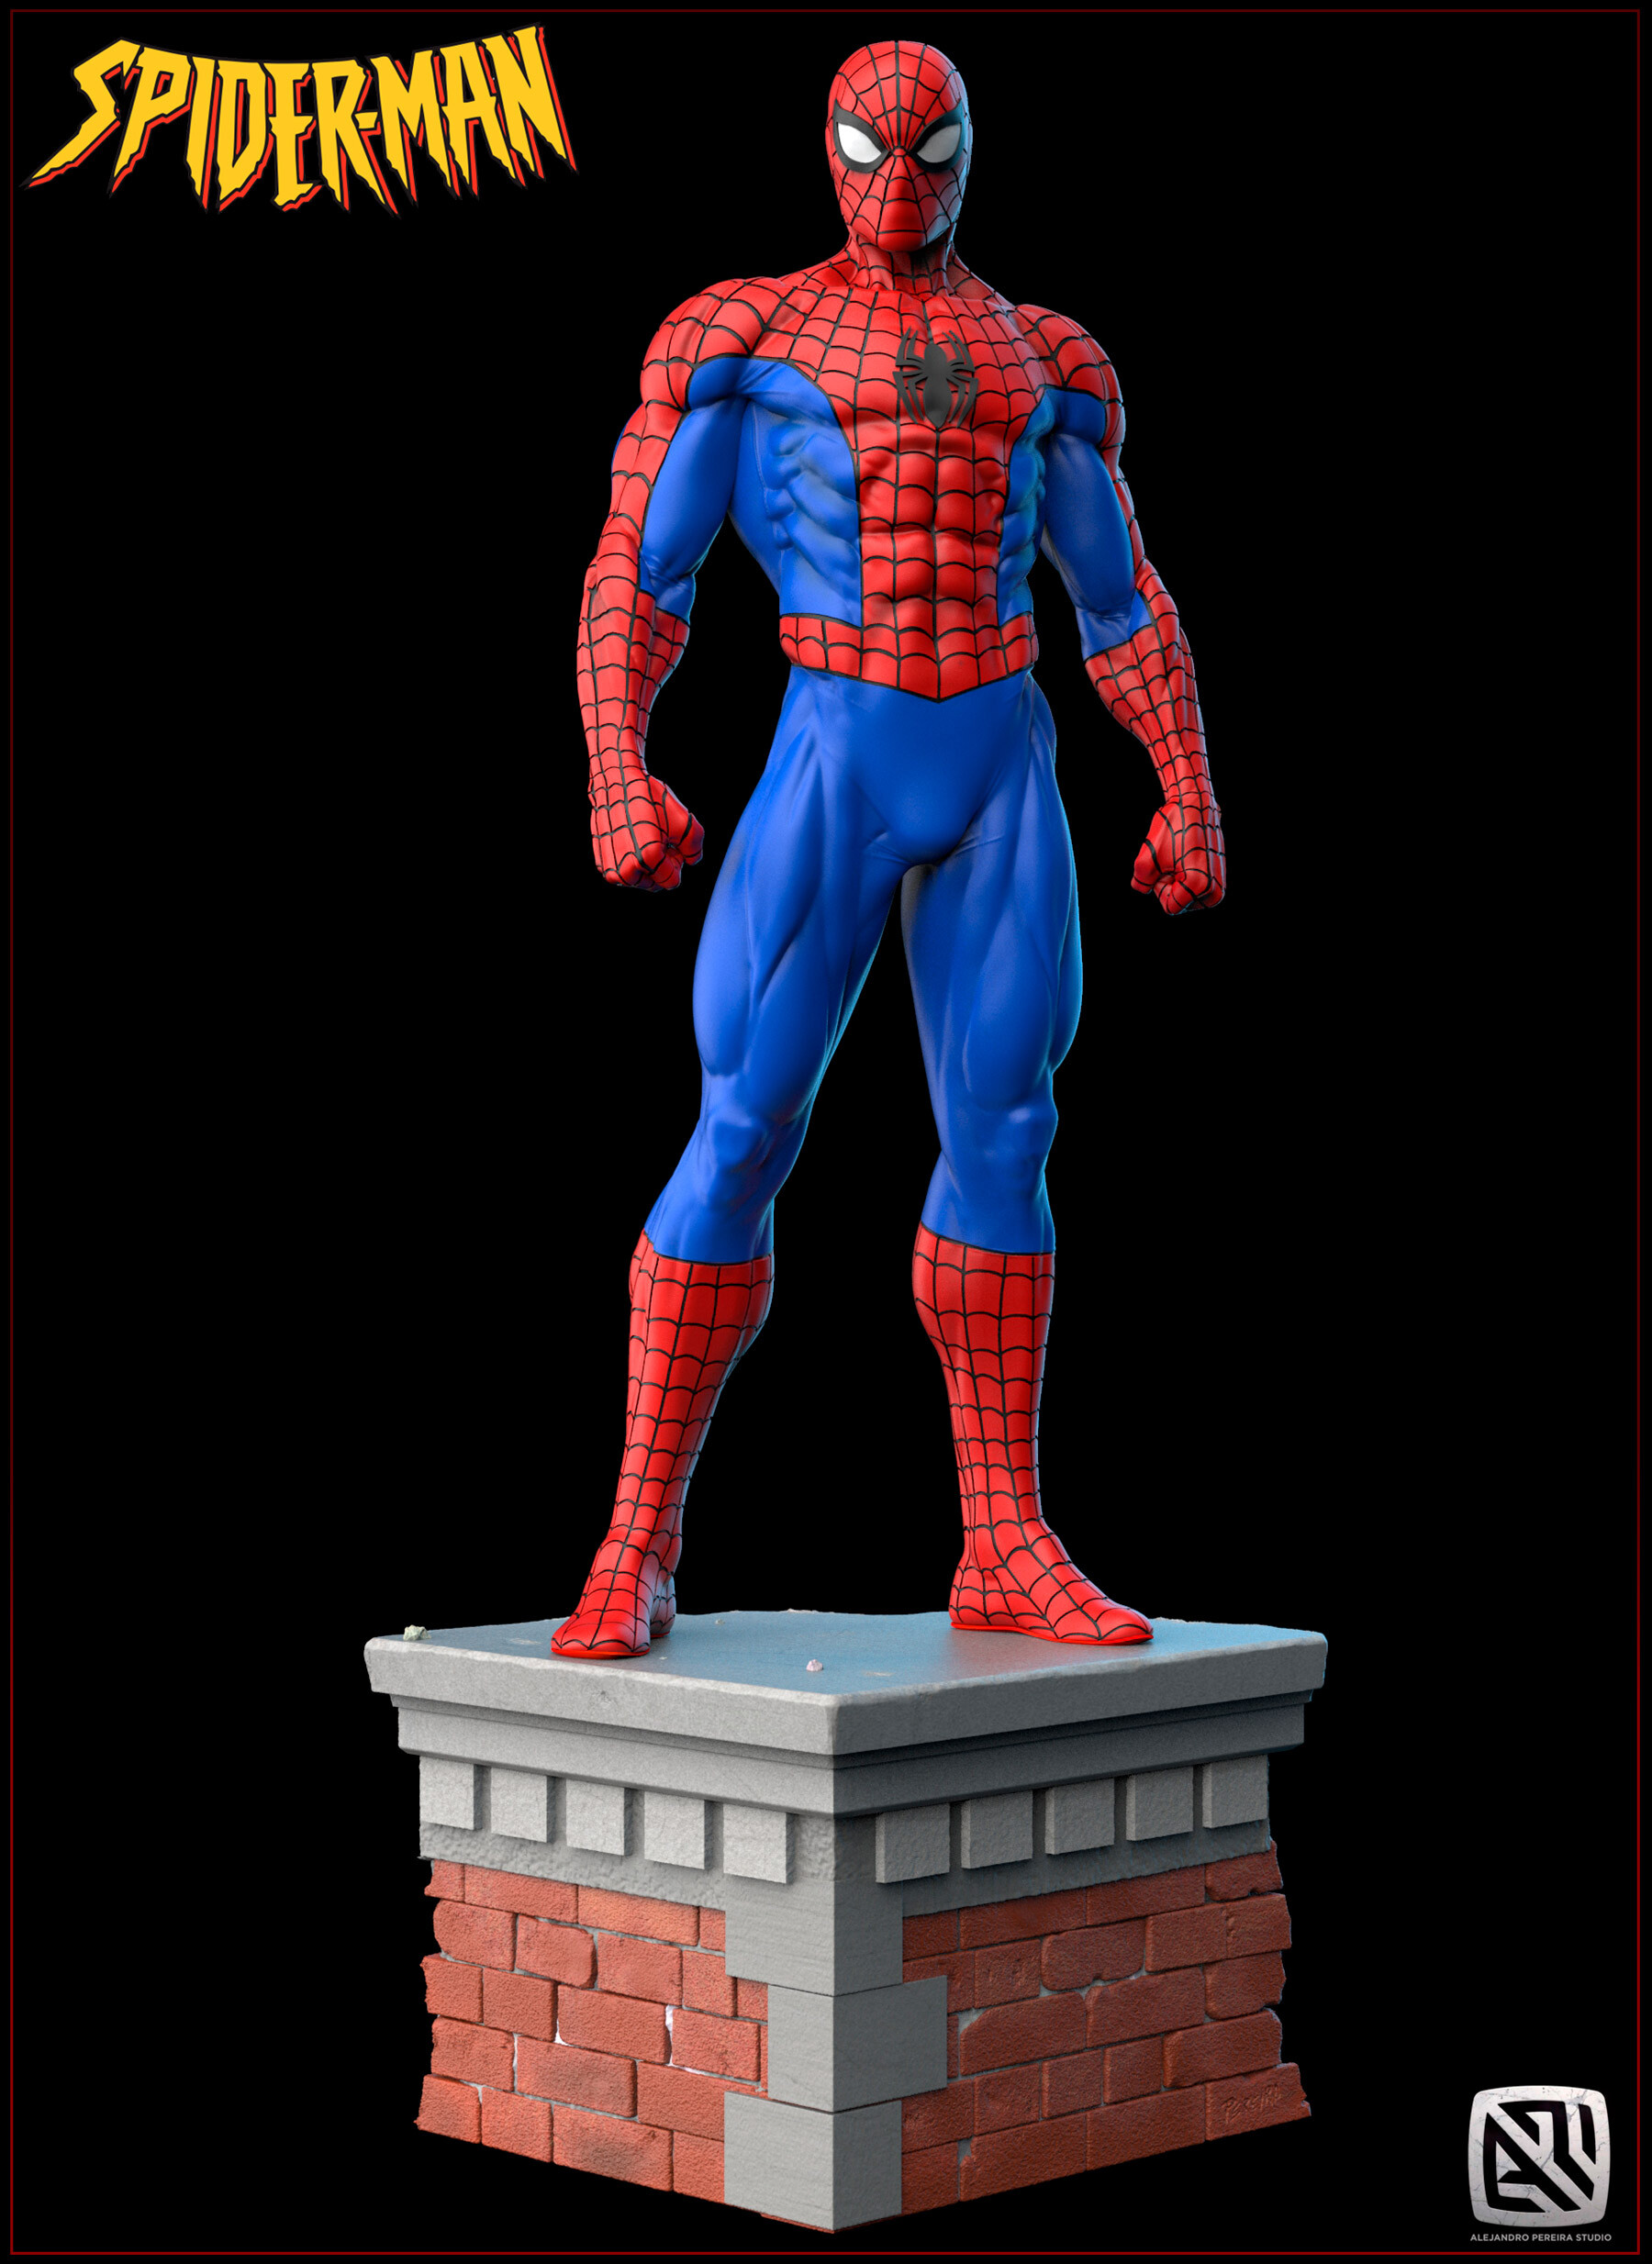 Alejandro pereira spidey render color 01